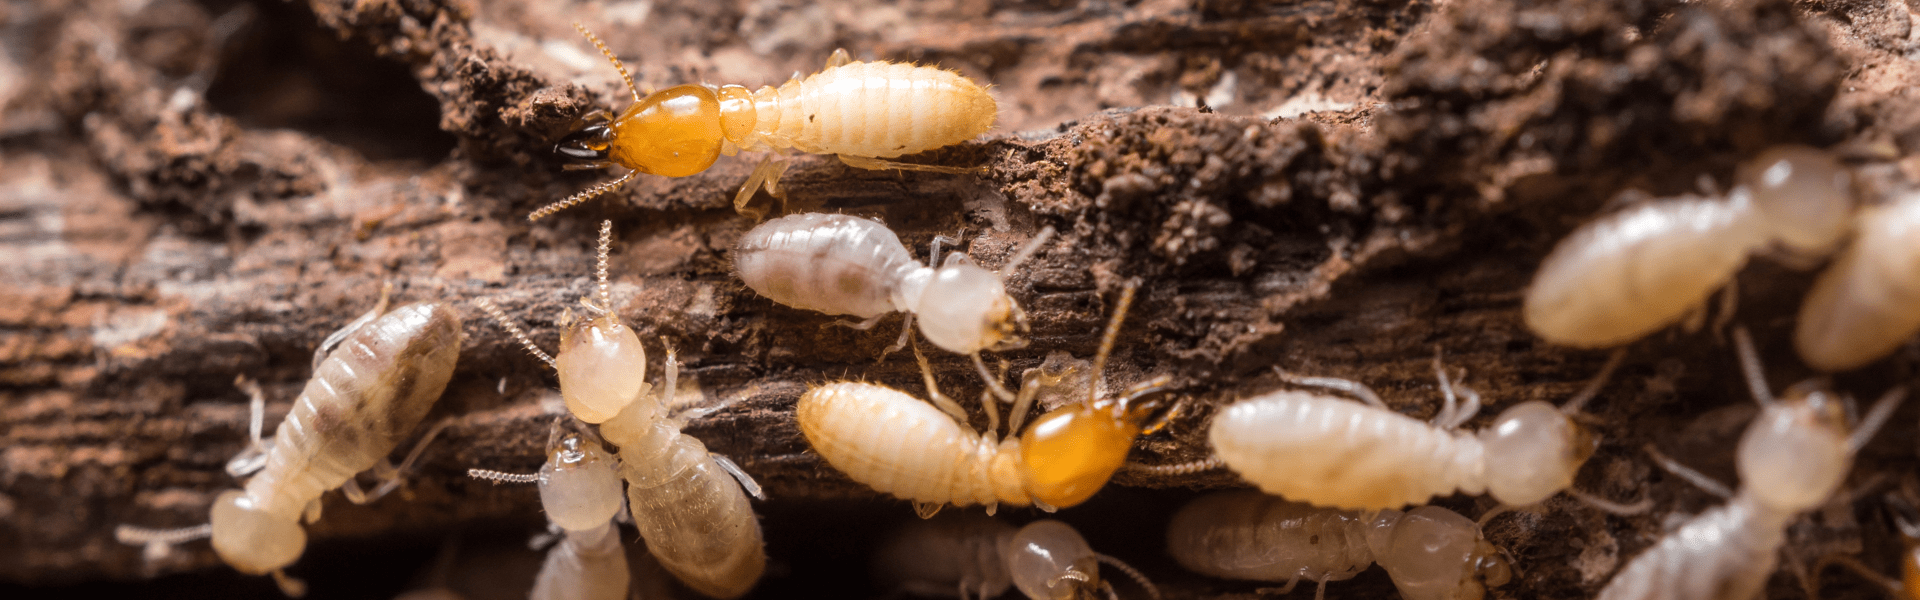 termite workers foraging for food